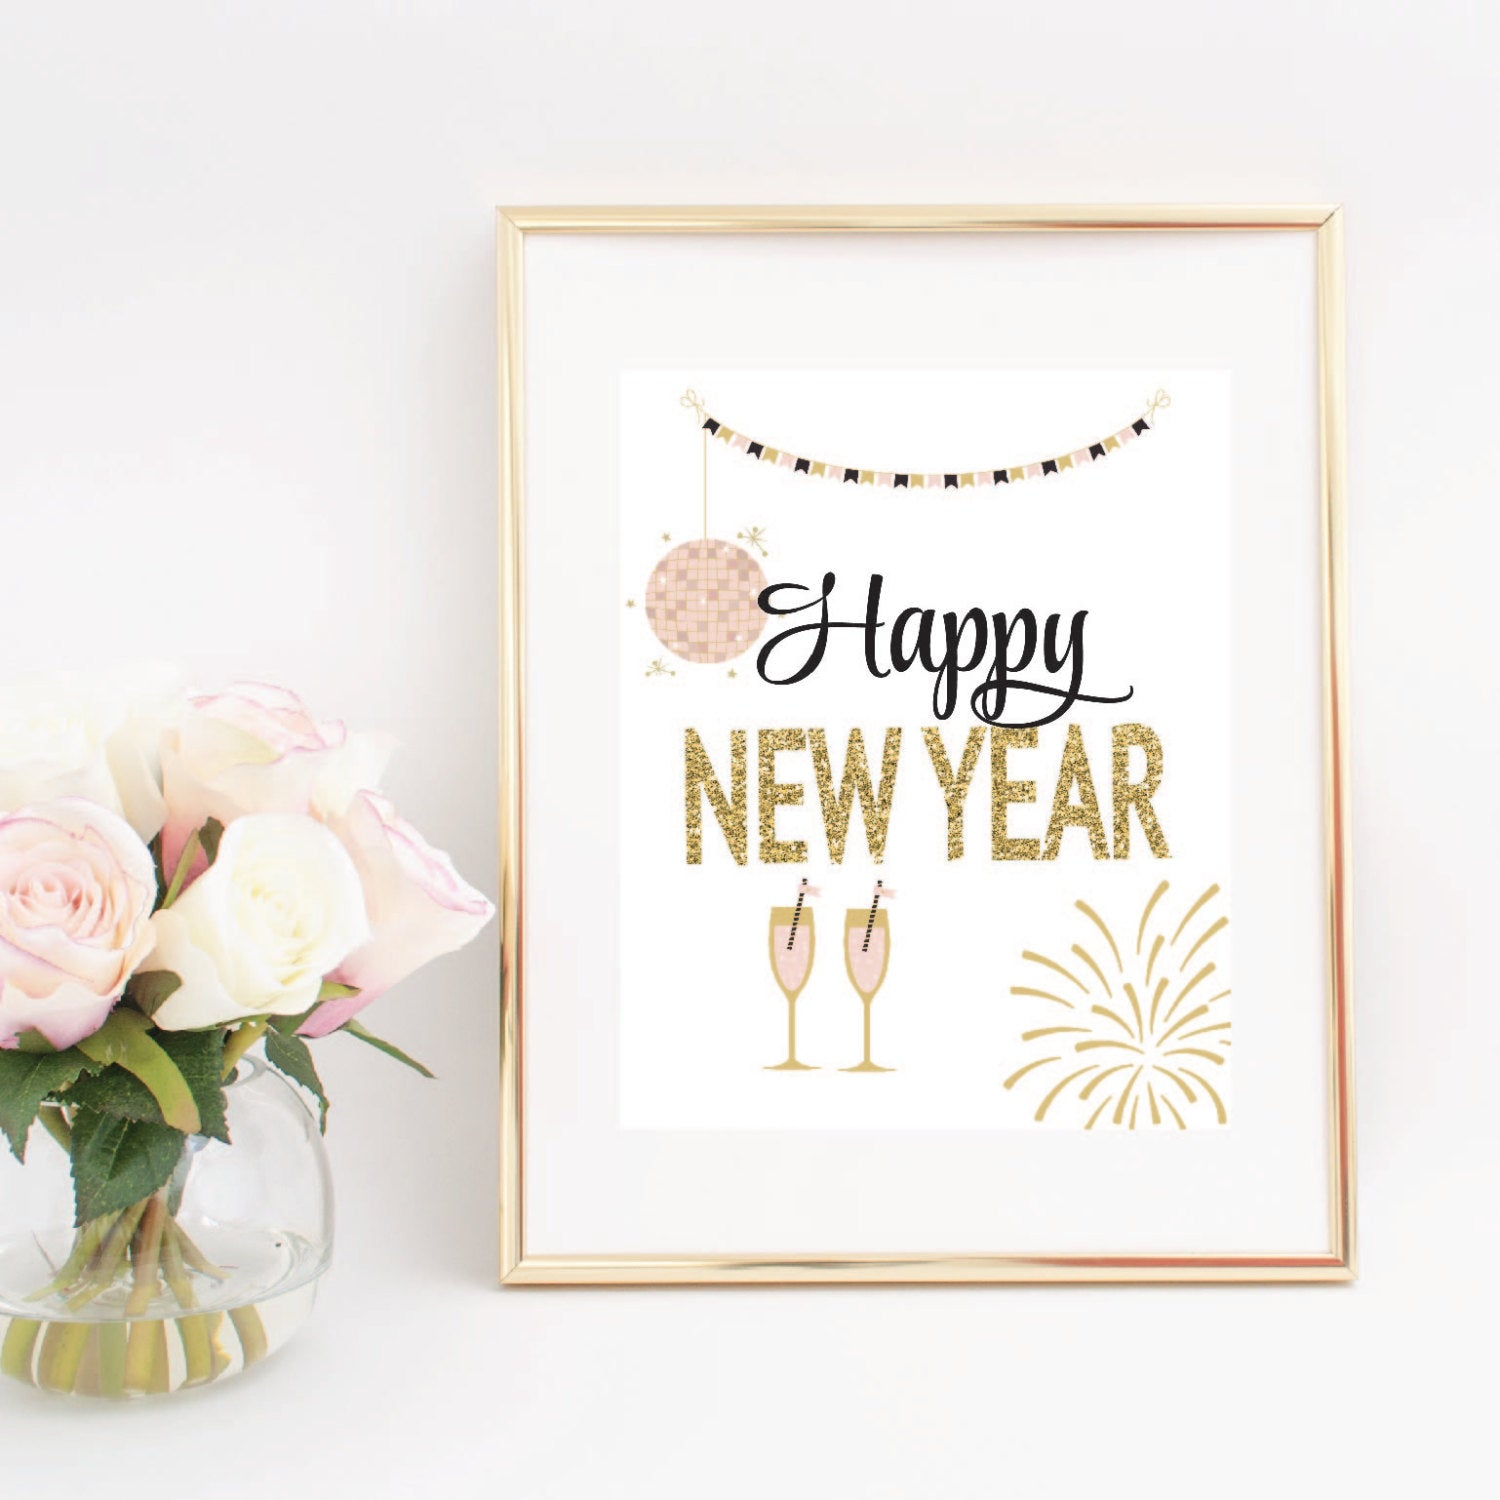 happy new year with gold and pink champagne glasses fireworks and string lights digital download